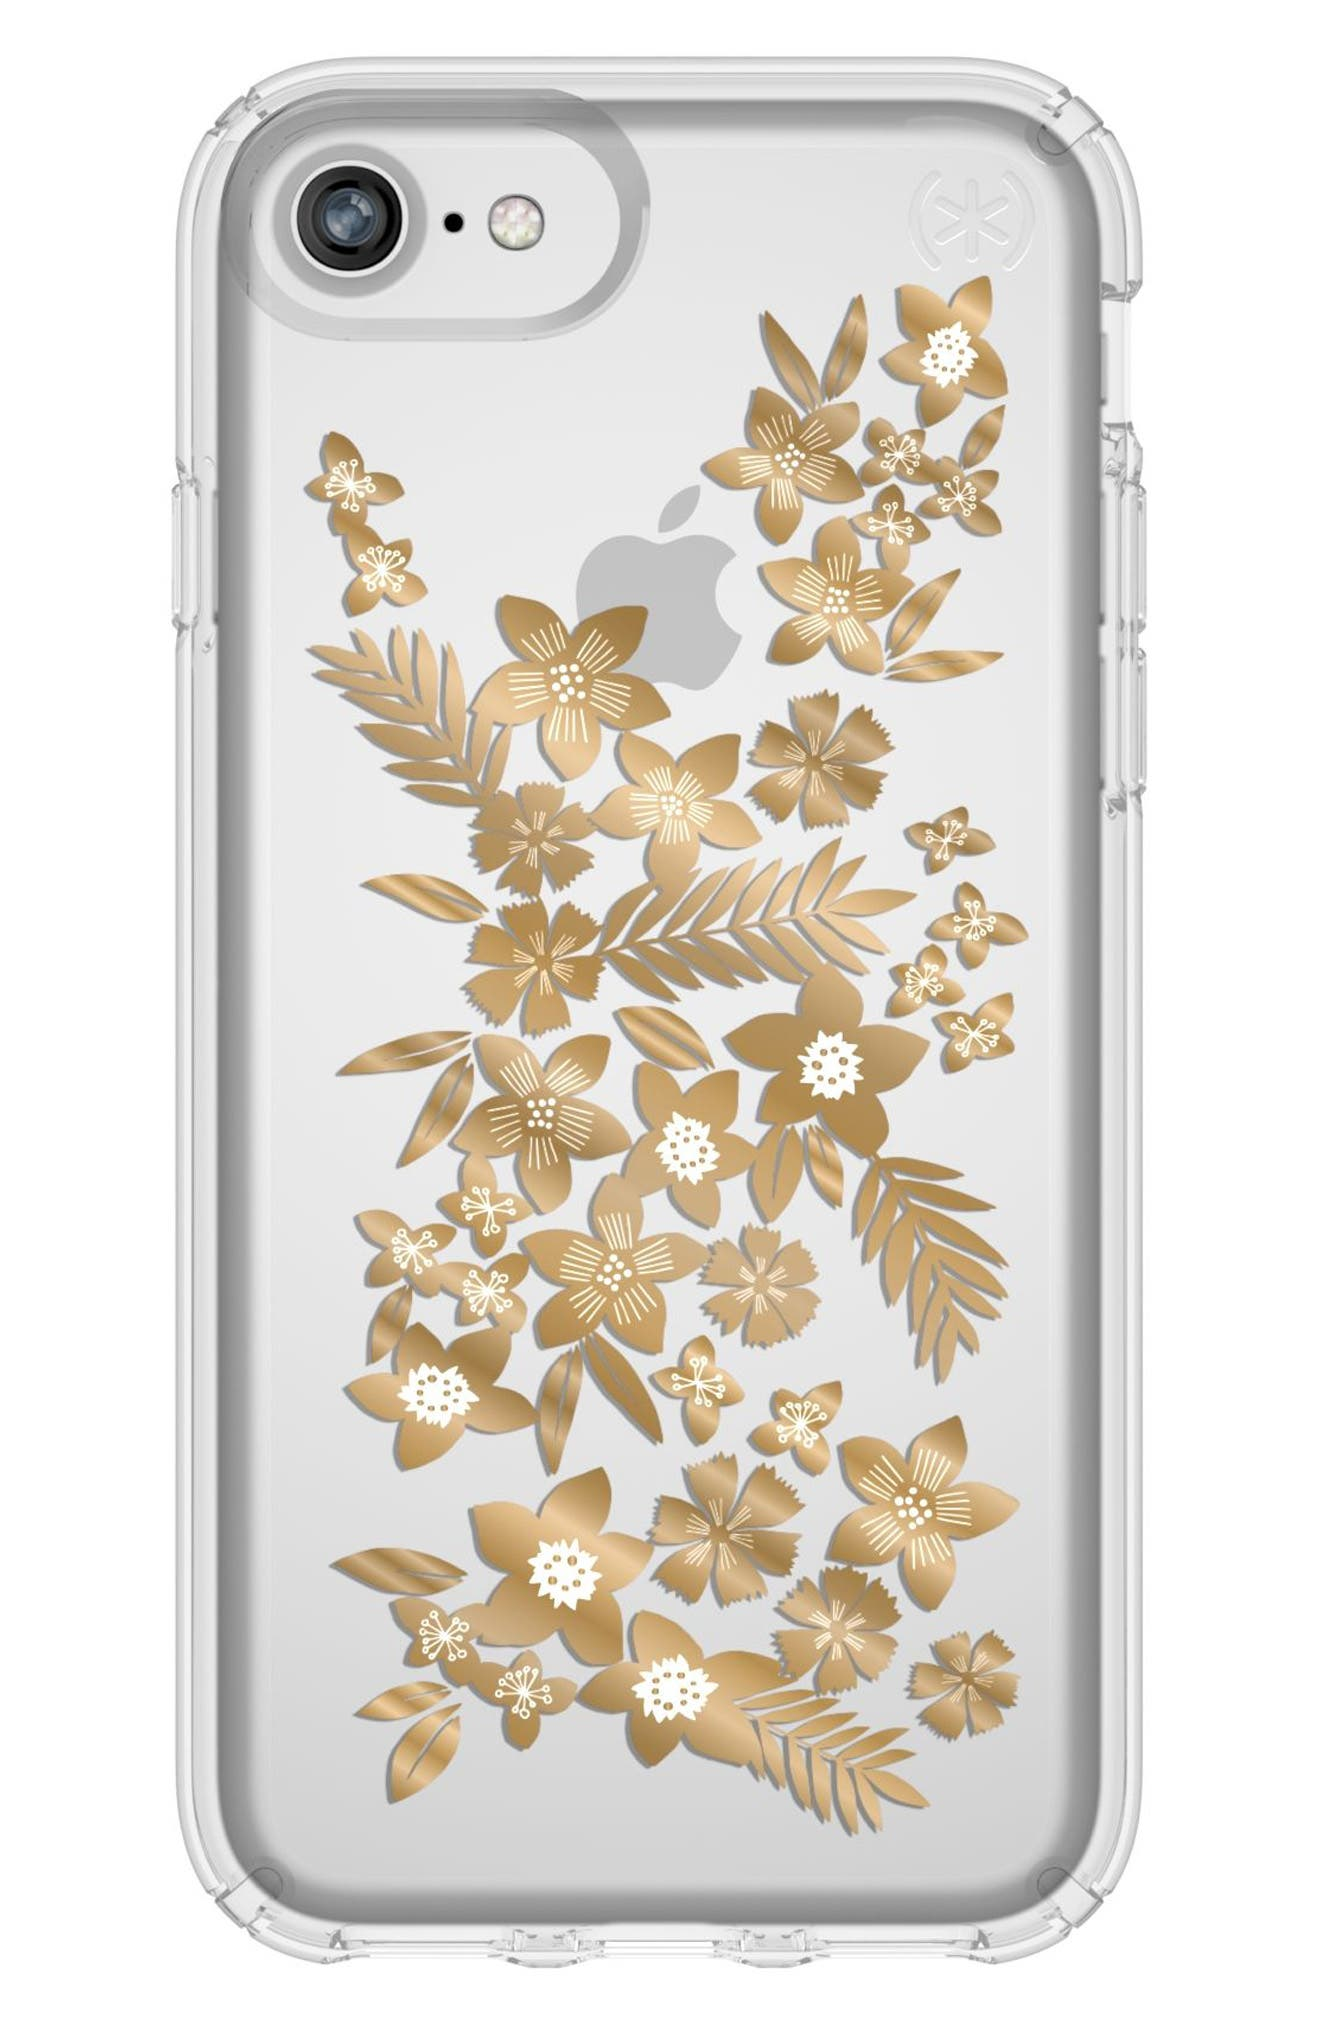 Alternate Image 1 Selected - Speck Transparent Shimmer Floral Metallic iPhone 6/6s/7/8 Case